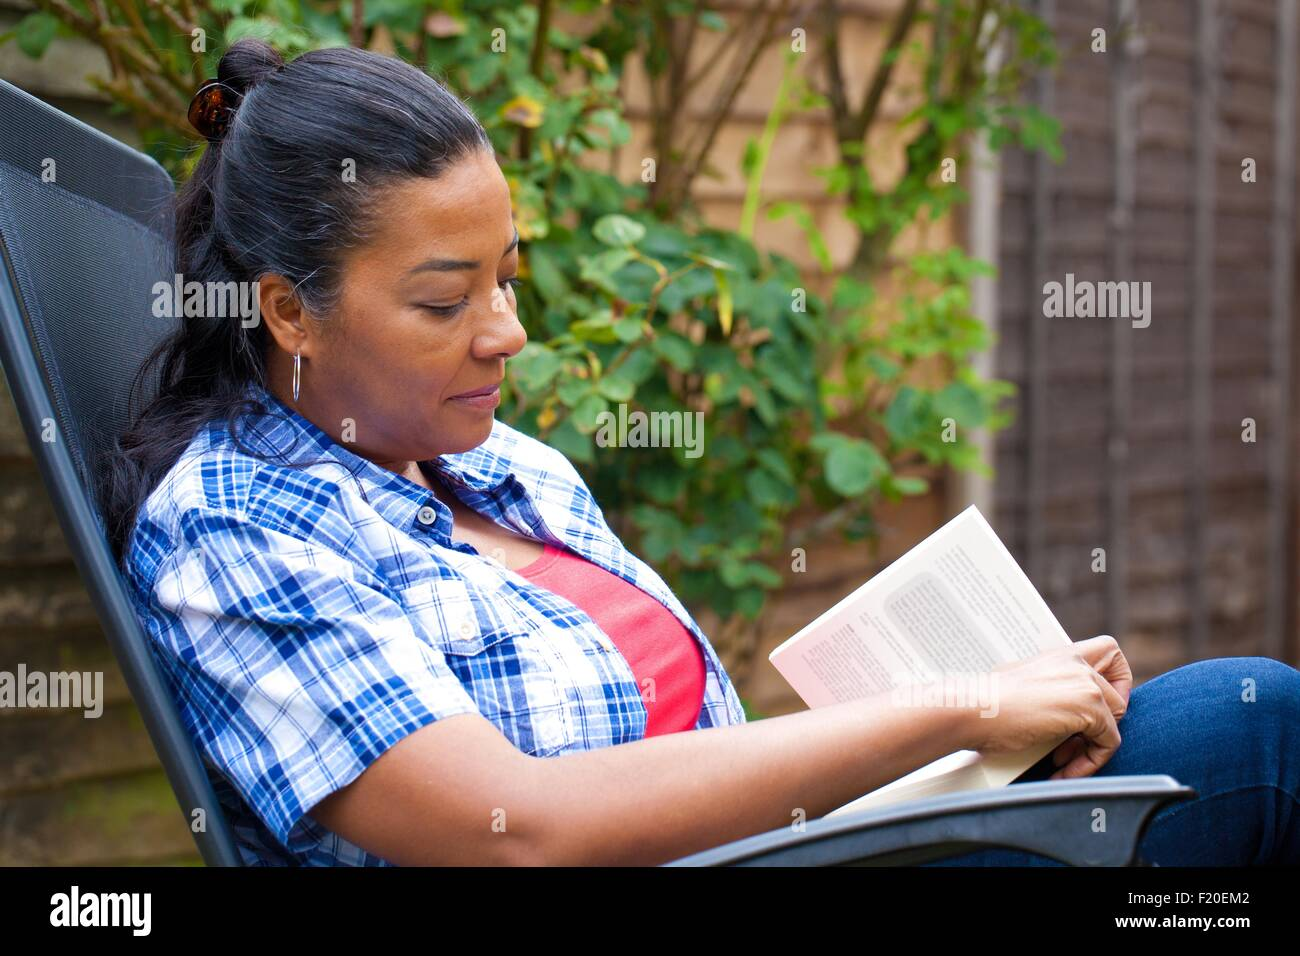 Mature woman on sun lounger reading book in garden - Stock Image